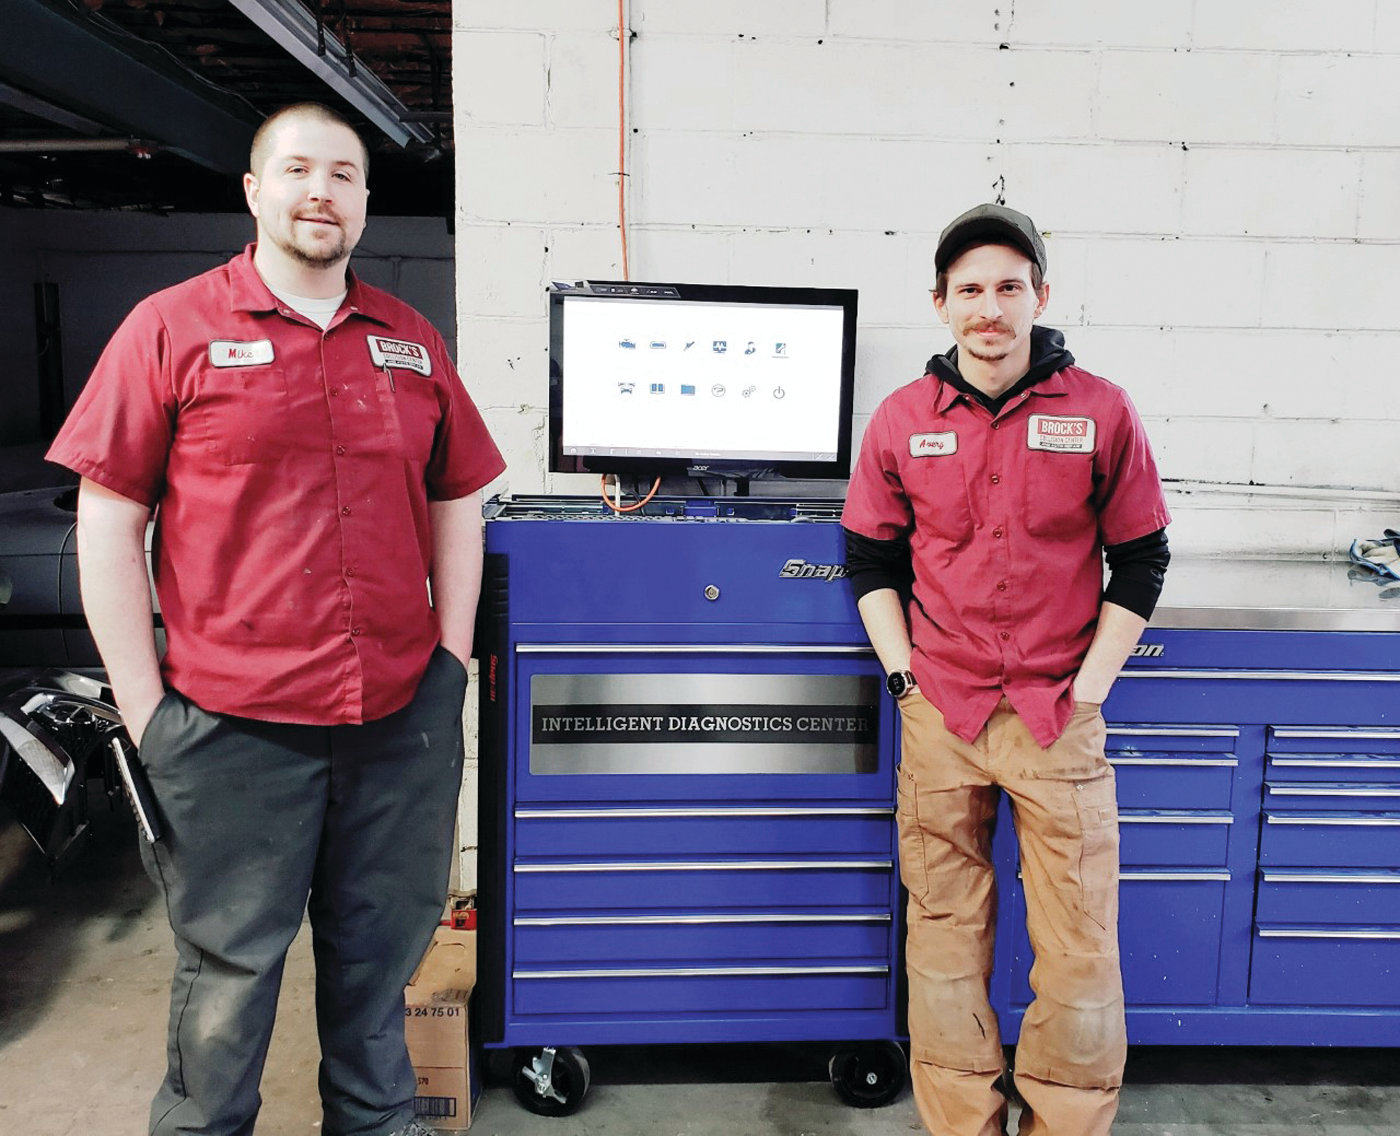 Avery Broccoli and Mike Thoin, the co-owners of Brock's Collision Center & Auto Repair in Apponaug, stand by their new Snap-On Zeus Intelligent Diagnostics Center. The workmanship of this team of professionals is methodical and detailed.  To see samples of their work, visit their website at www.brockscollisioncenter3066.com.